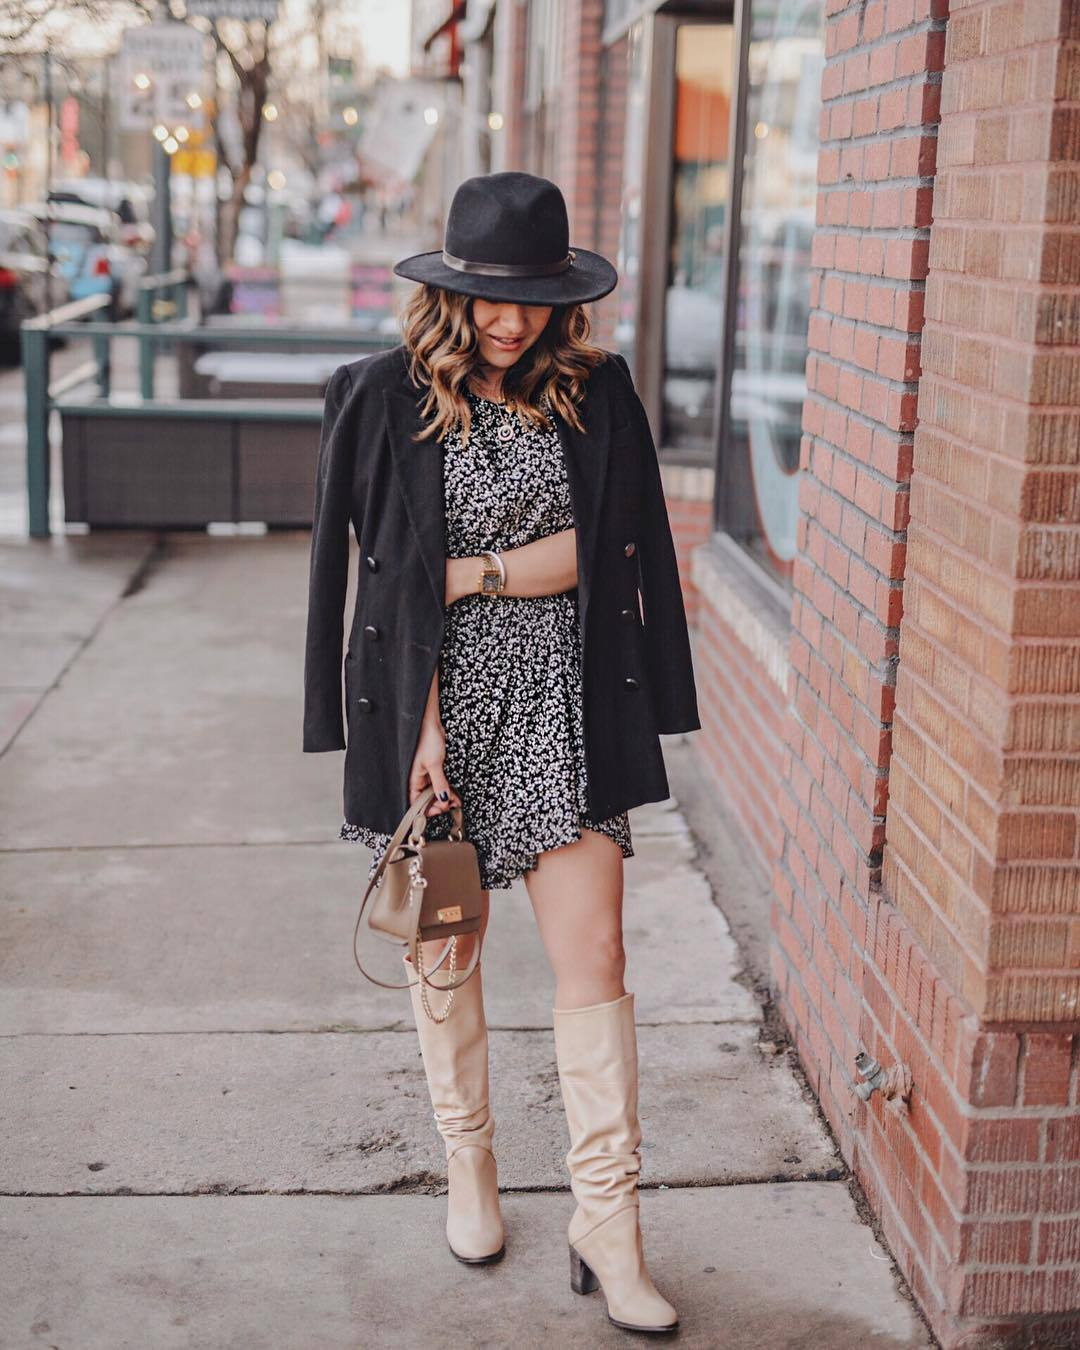 dress mini dress free people knee high boots heel boots bag black coat double breasted hat